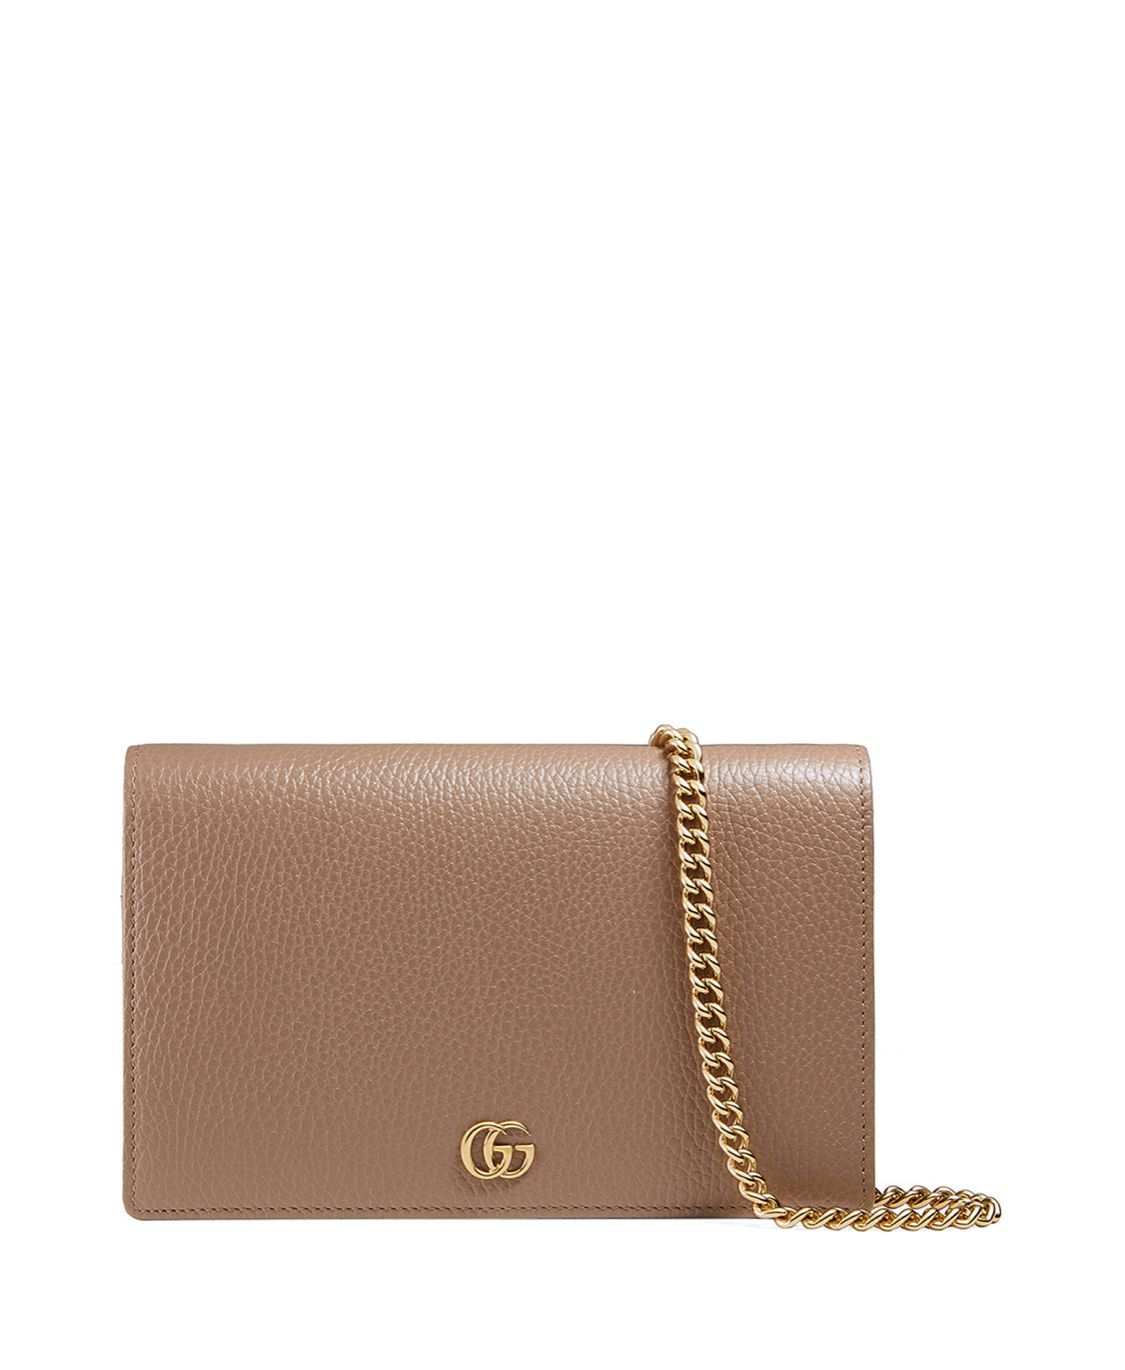 e08a4d457ed Gucci Petite Marmont Wallet on a Chain in Beige